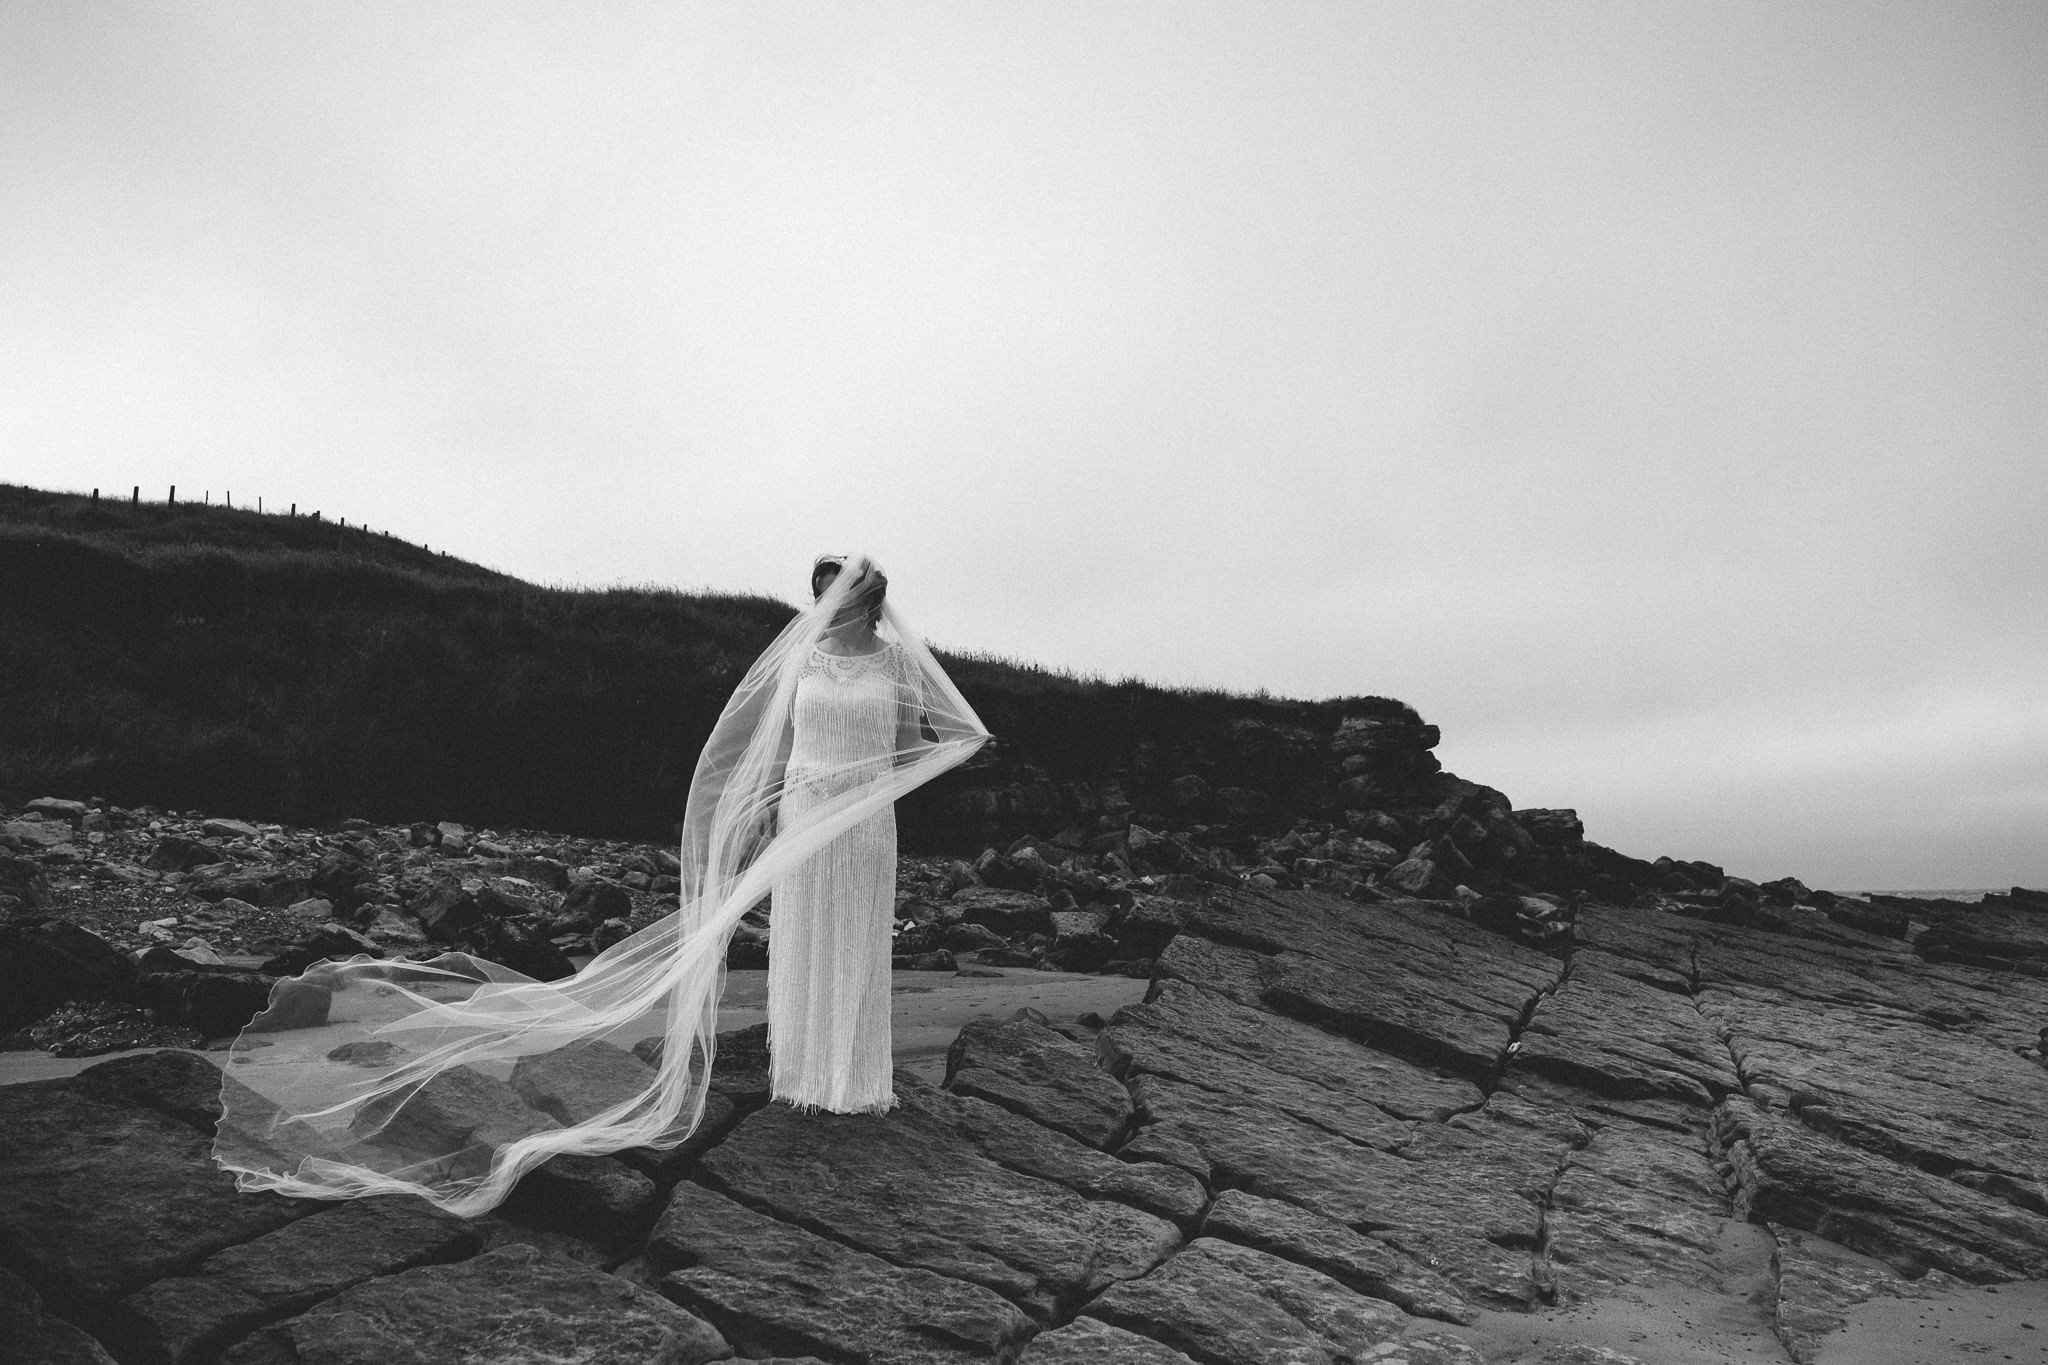 A black and white photo of a bride standing on rocks with her veil blowing in the wind